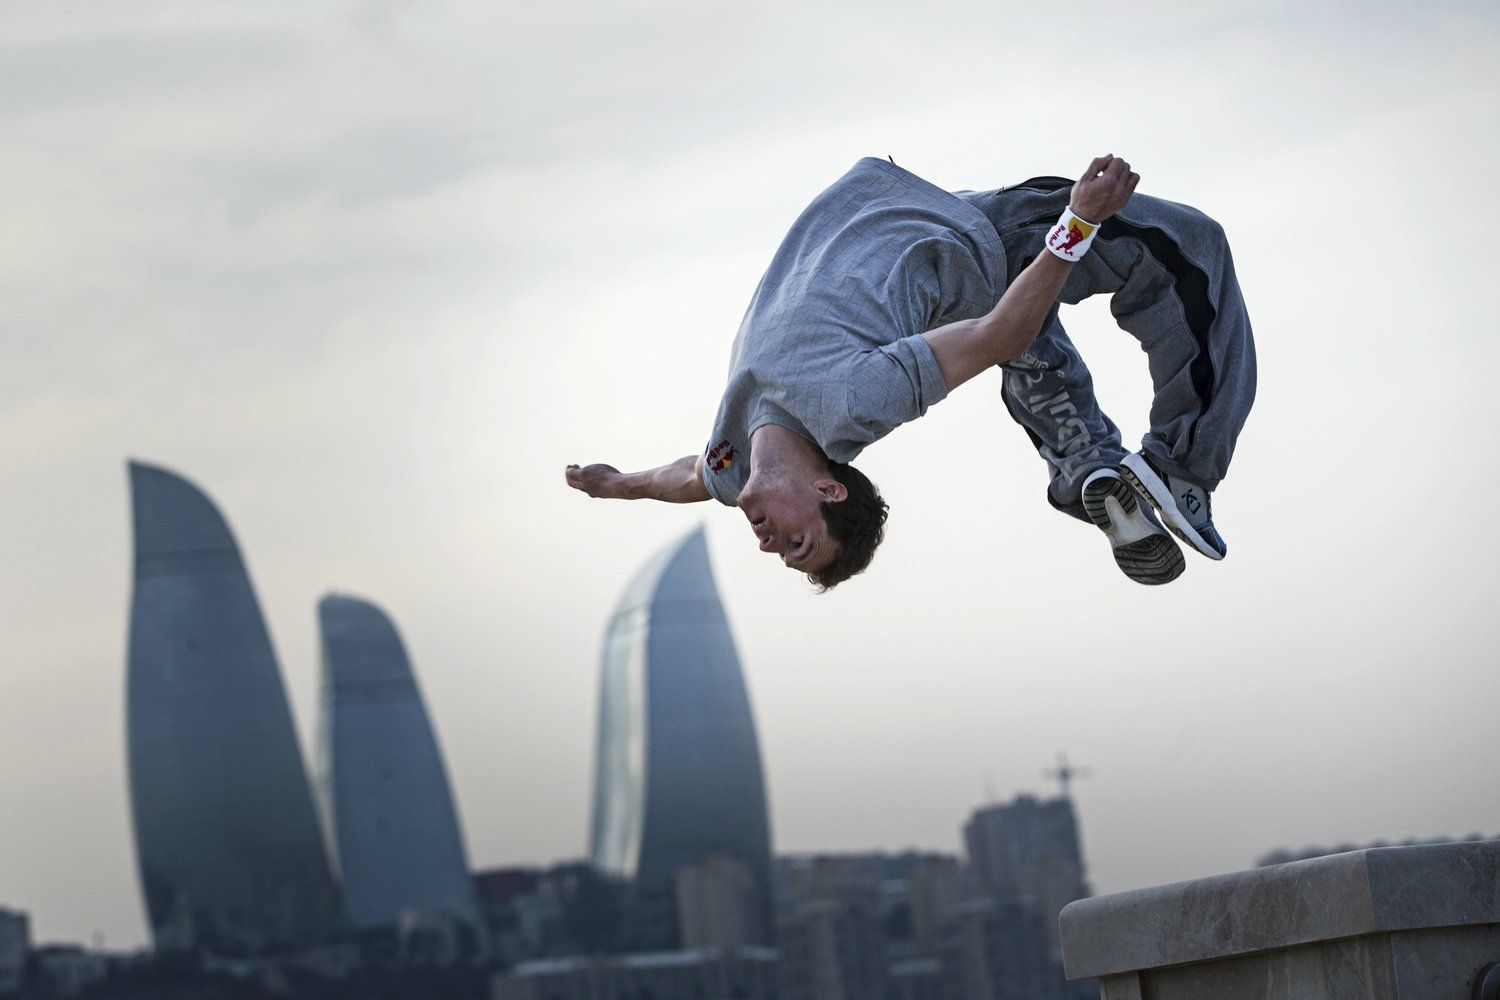 Video Freerunner Ryan Doyle Does It His Way Pose Reference